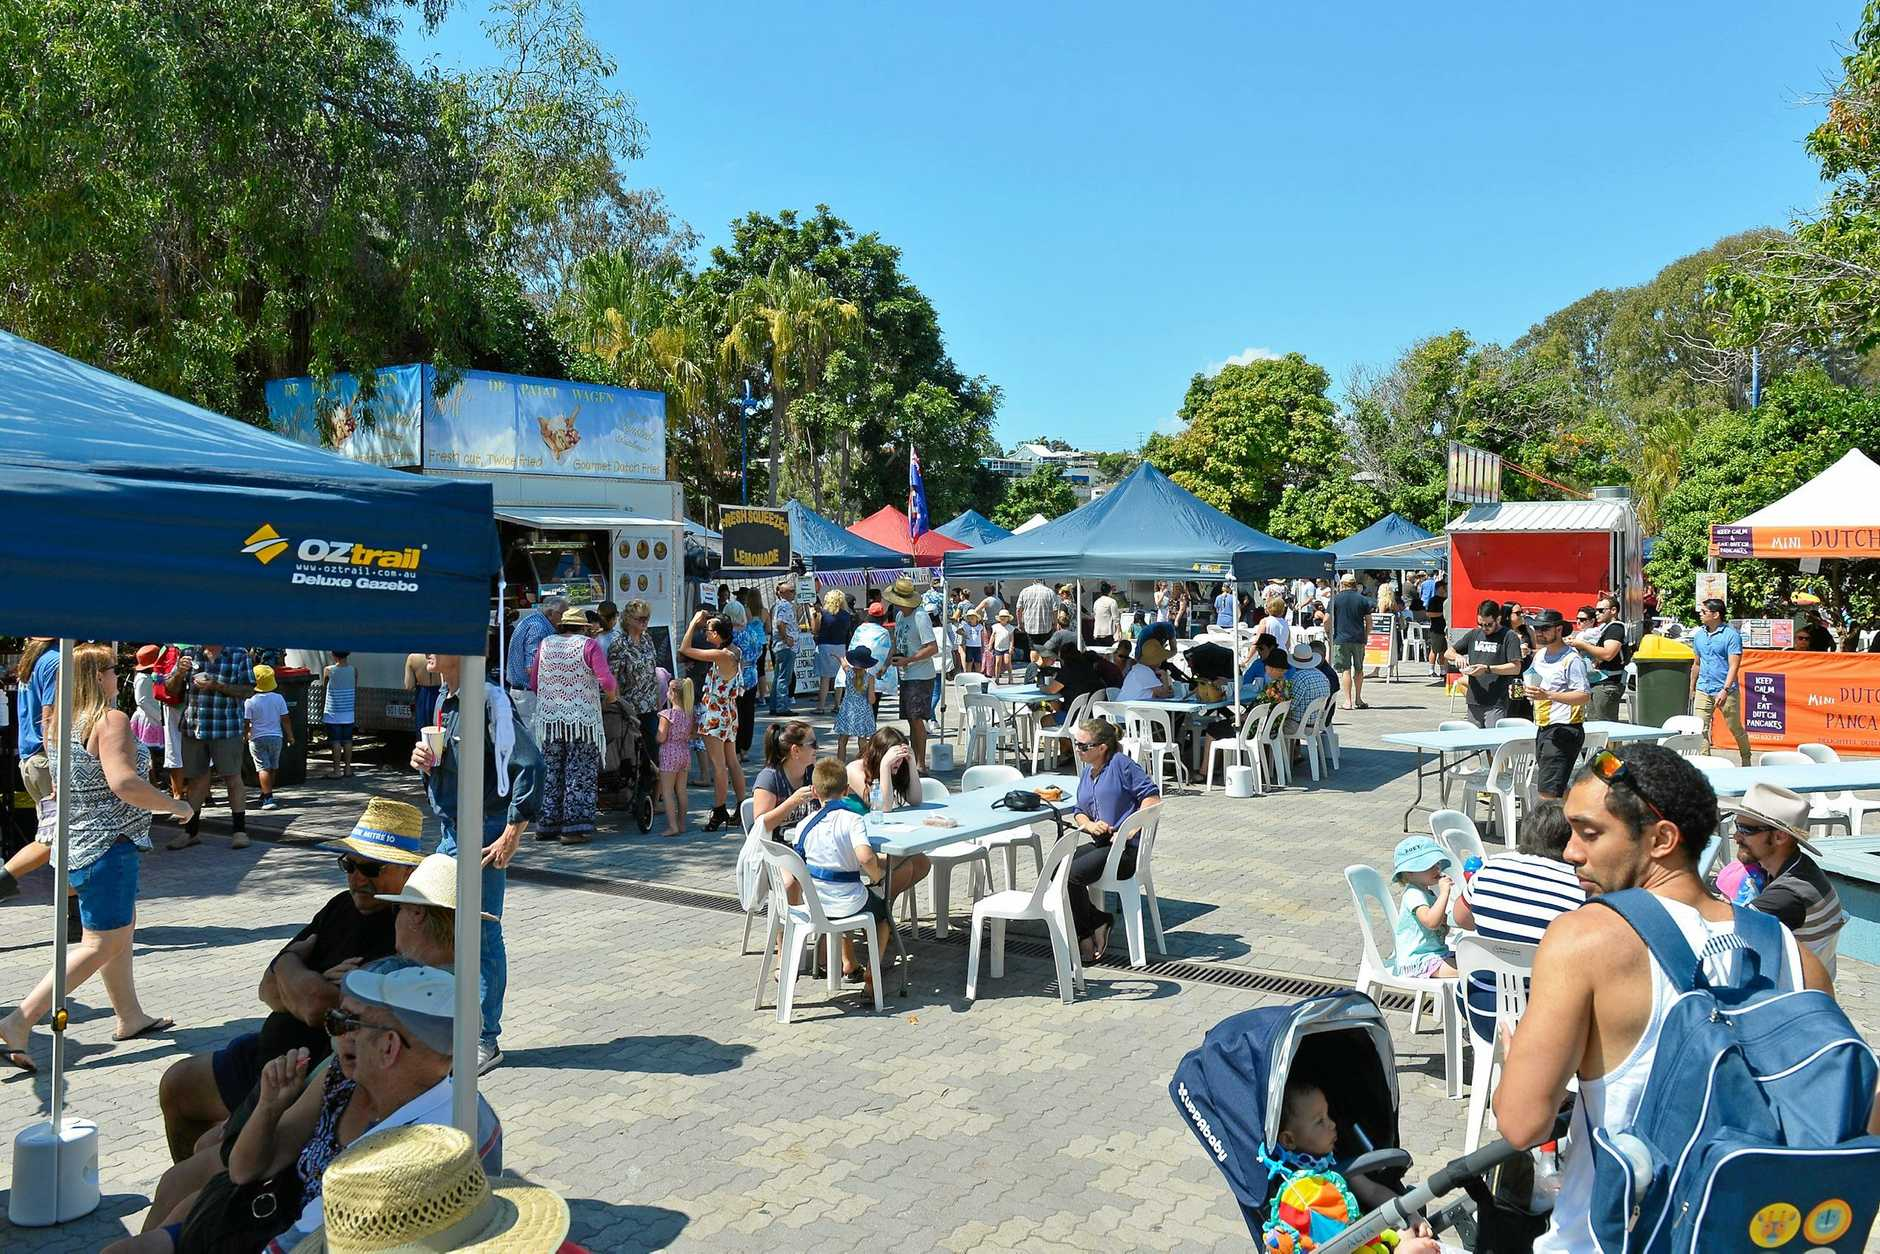 A lack of shade at the Marina Parklands had been a concern during previous Gladstone Multicultural Festival's.